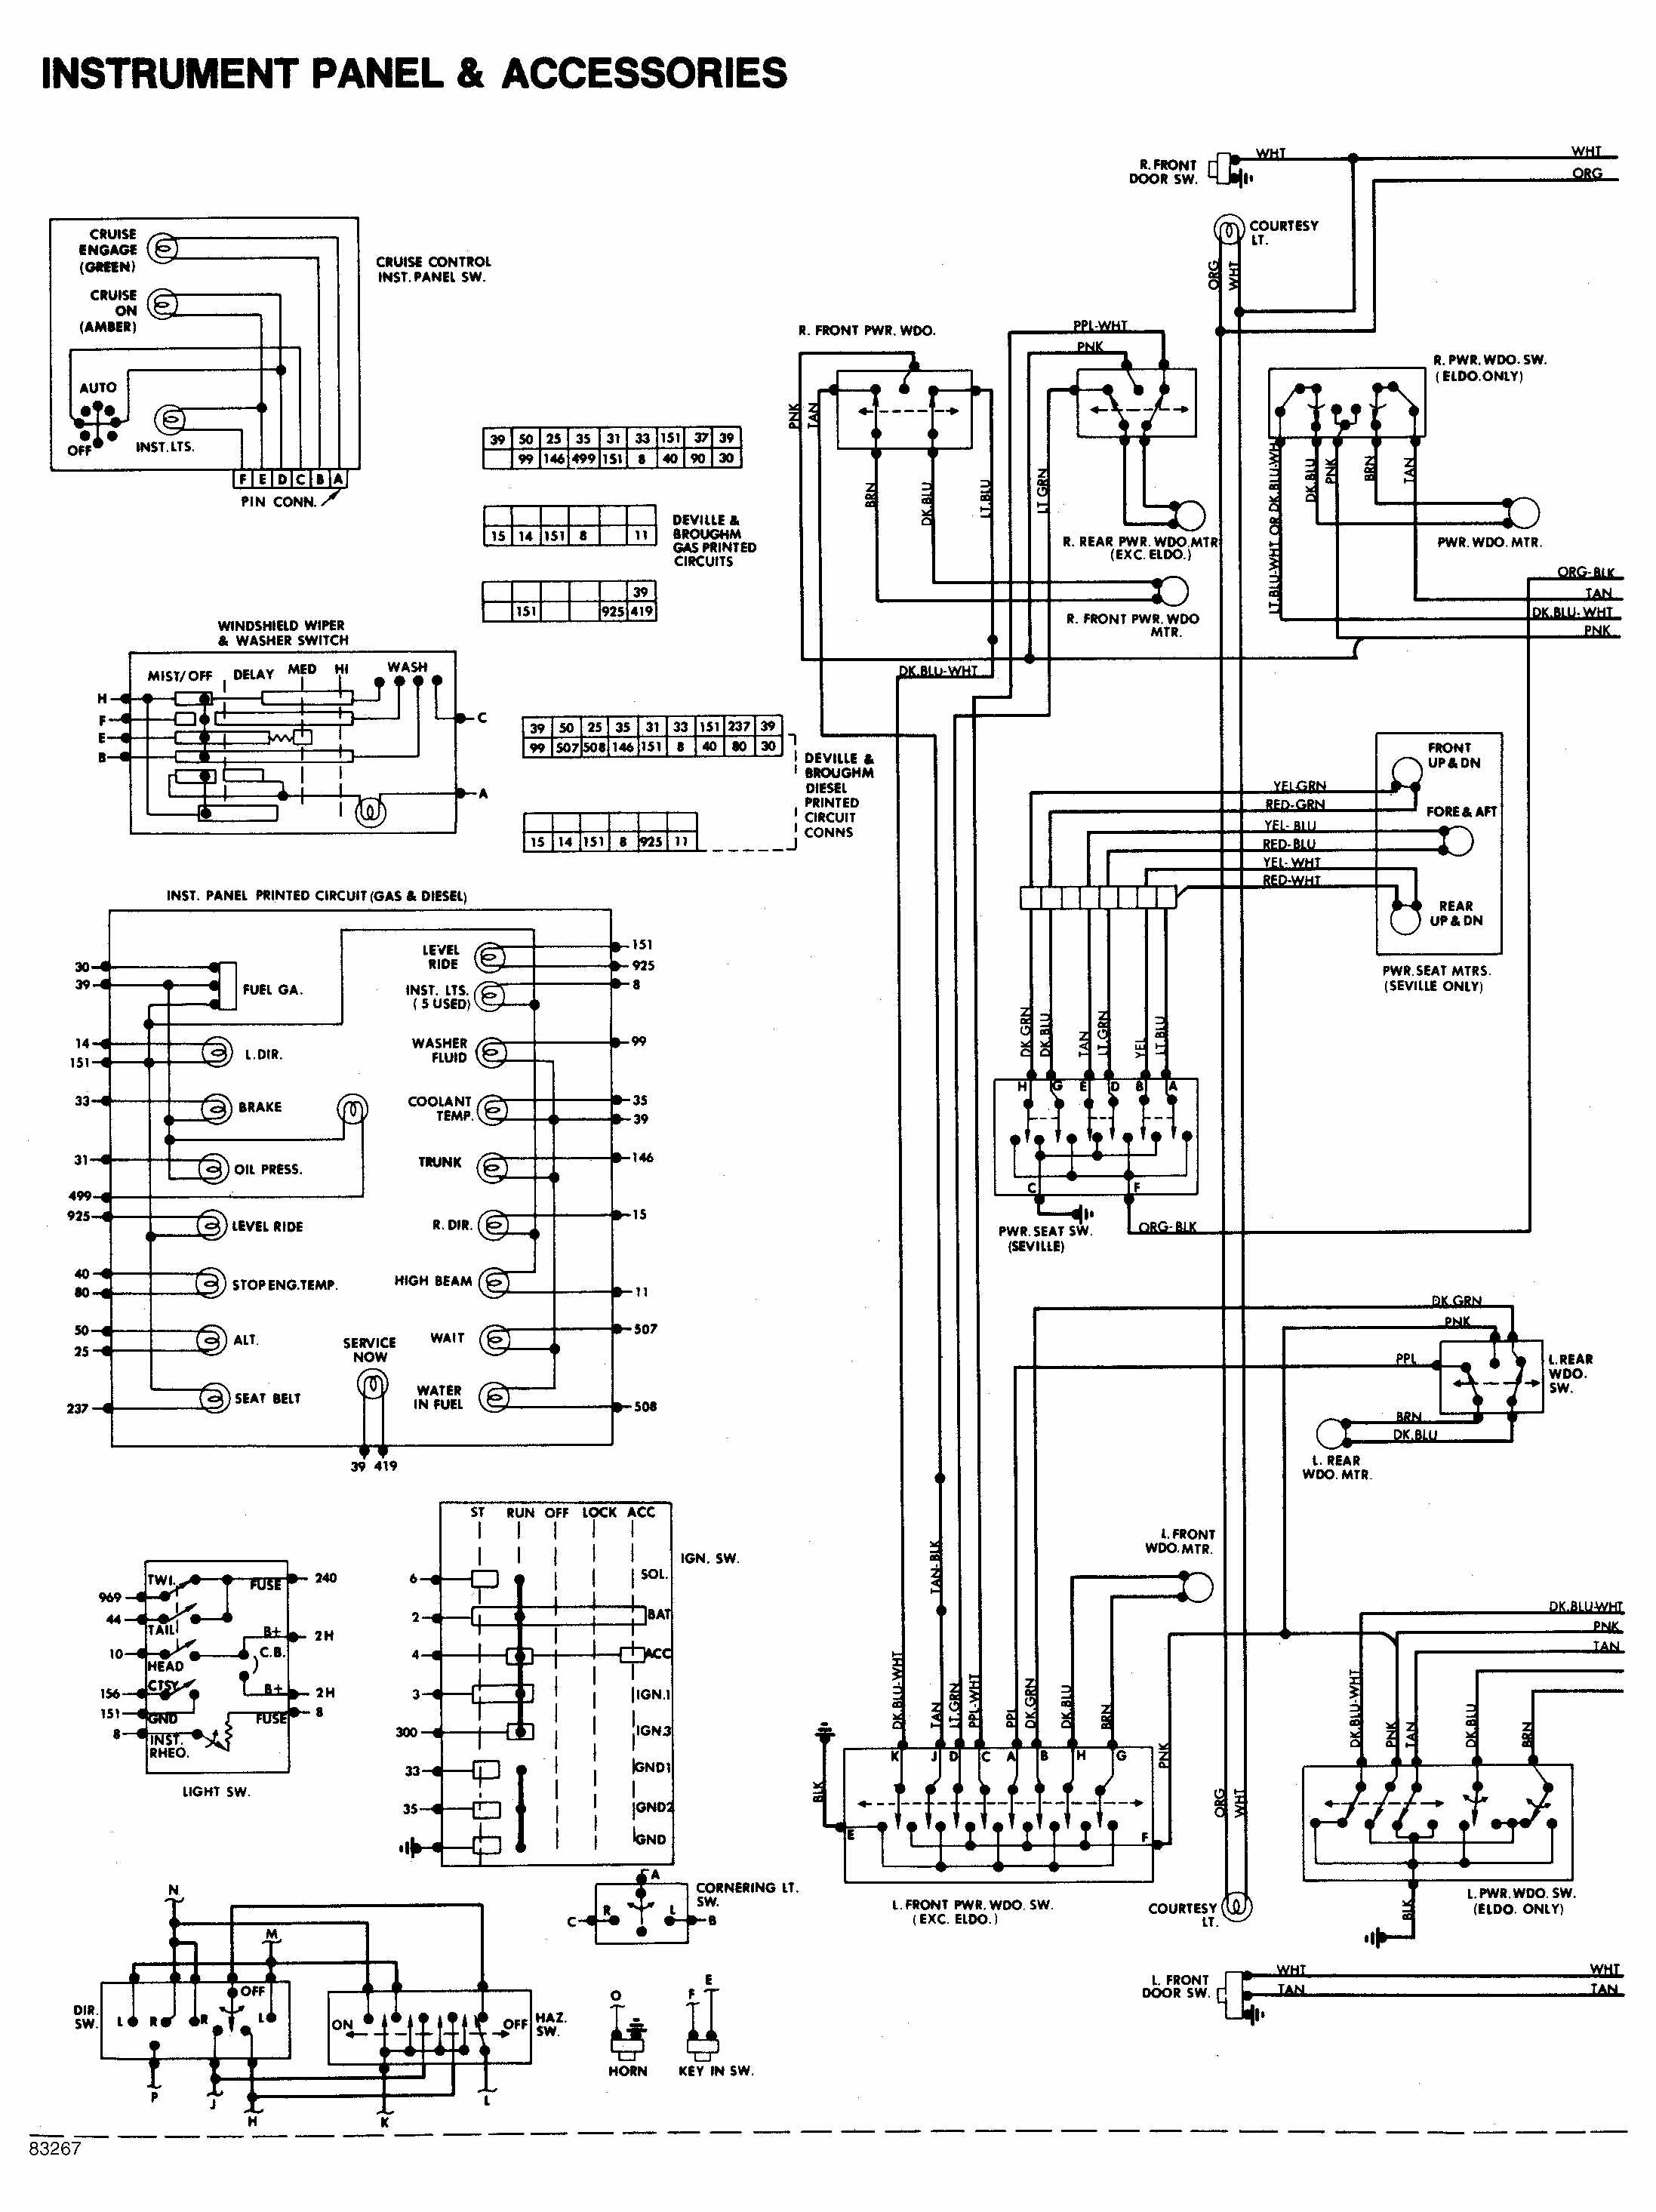 instrument panel and accessories wiring diagram of 1984 cadillac deville cadillac wiring harness ram truck wiring harness \u2022 wiring diagrams  at panicattacktreatment.co